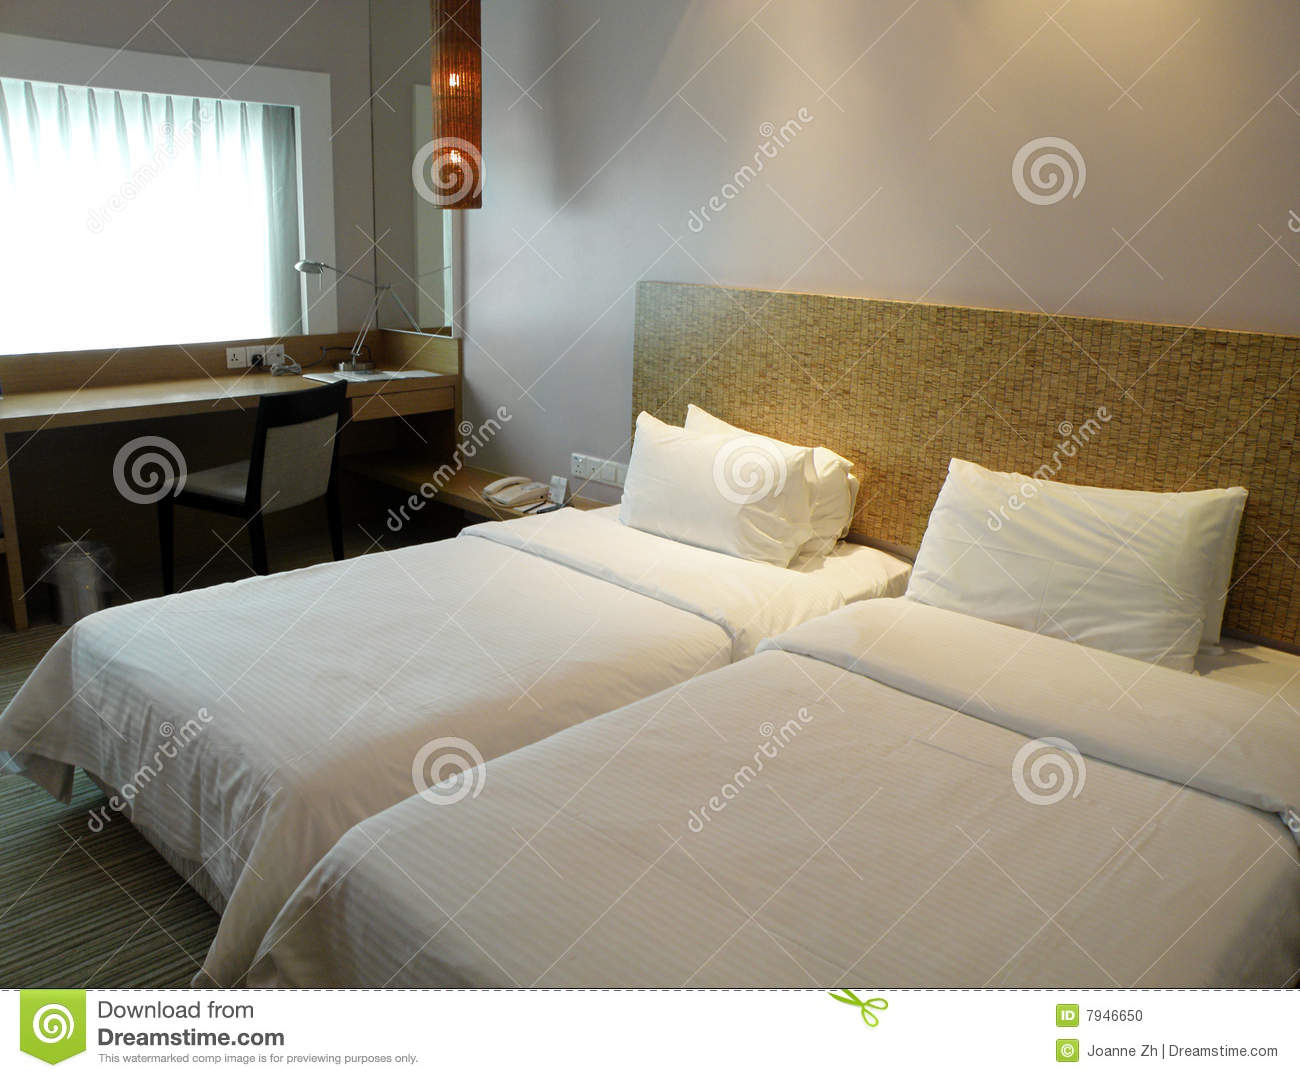 Simple hotel room interior stock photo image 7946650 for Hotel room interior images